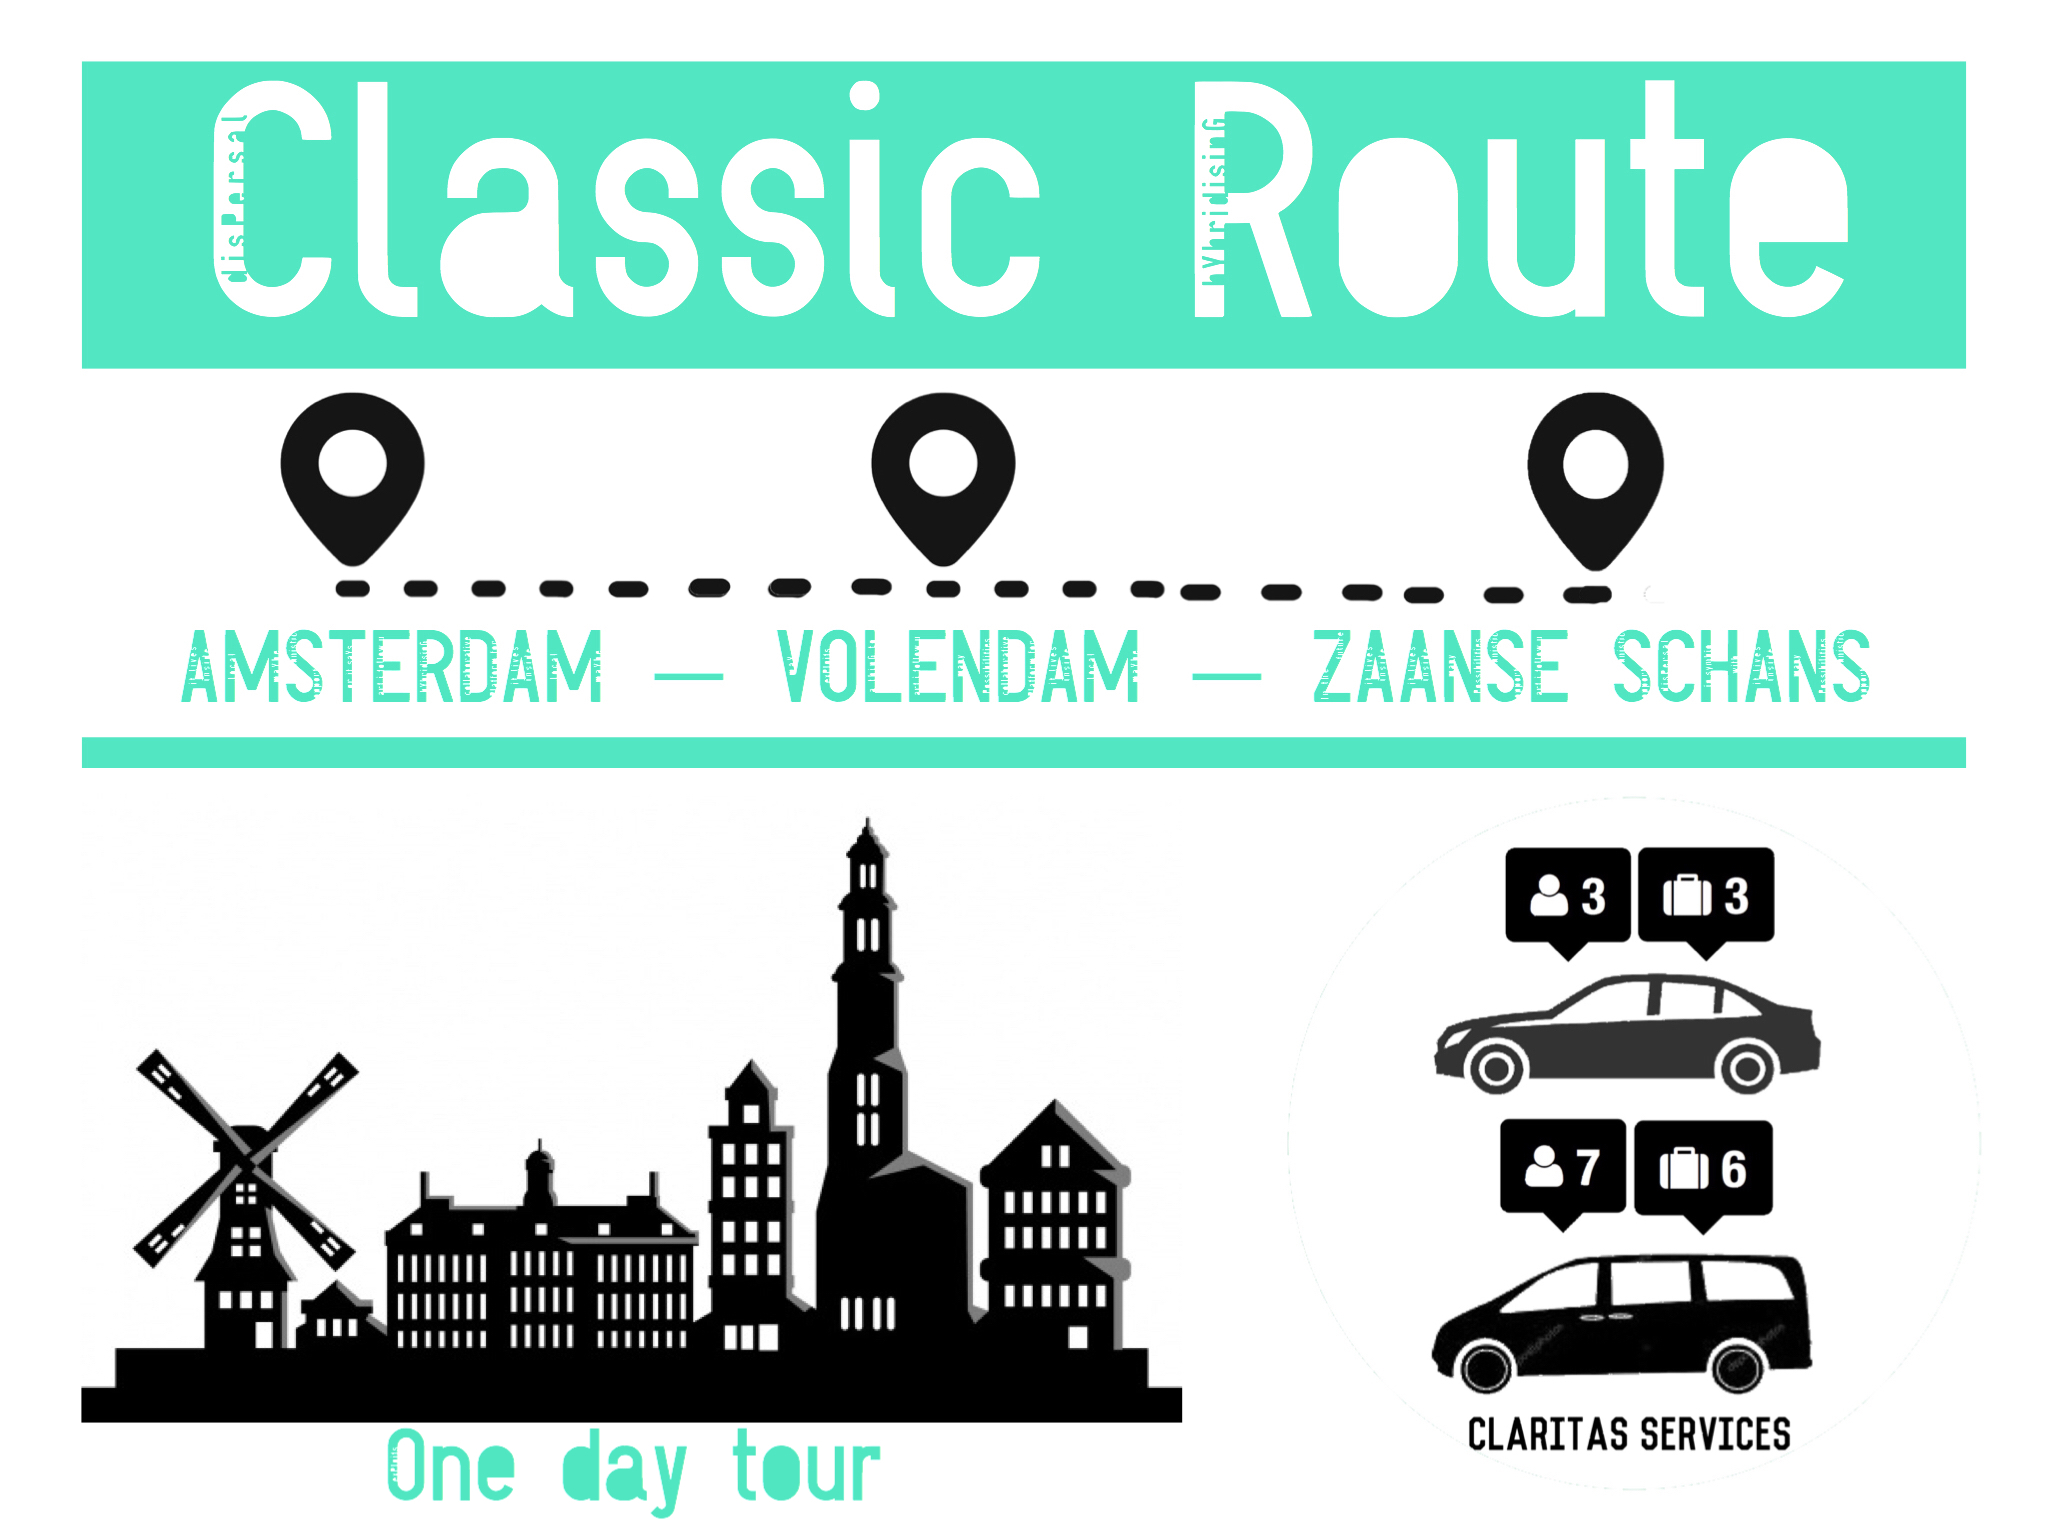 The Classic Route